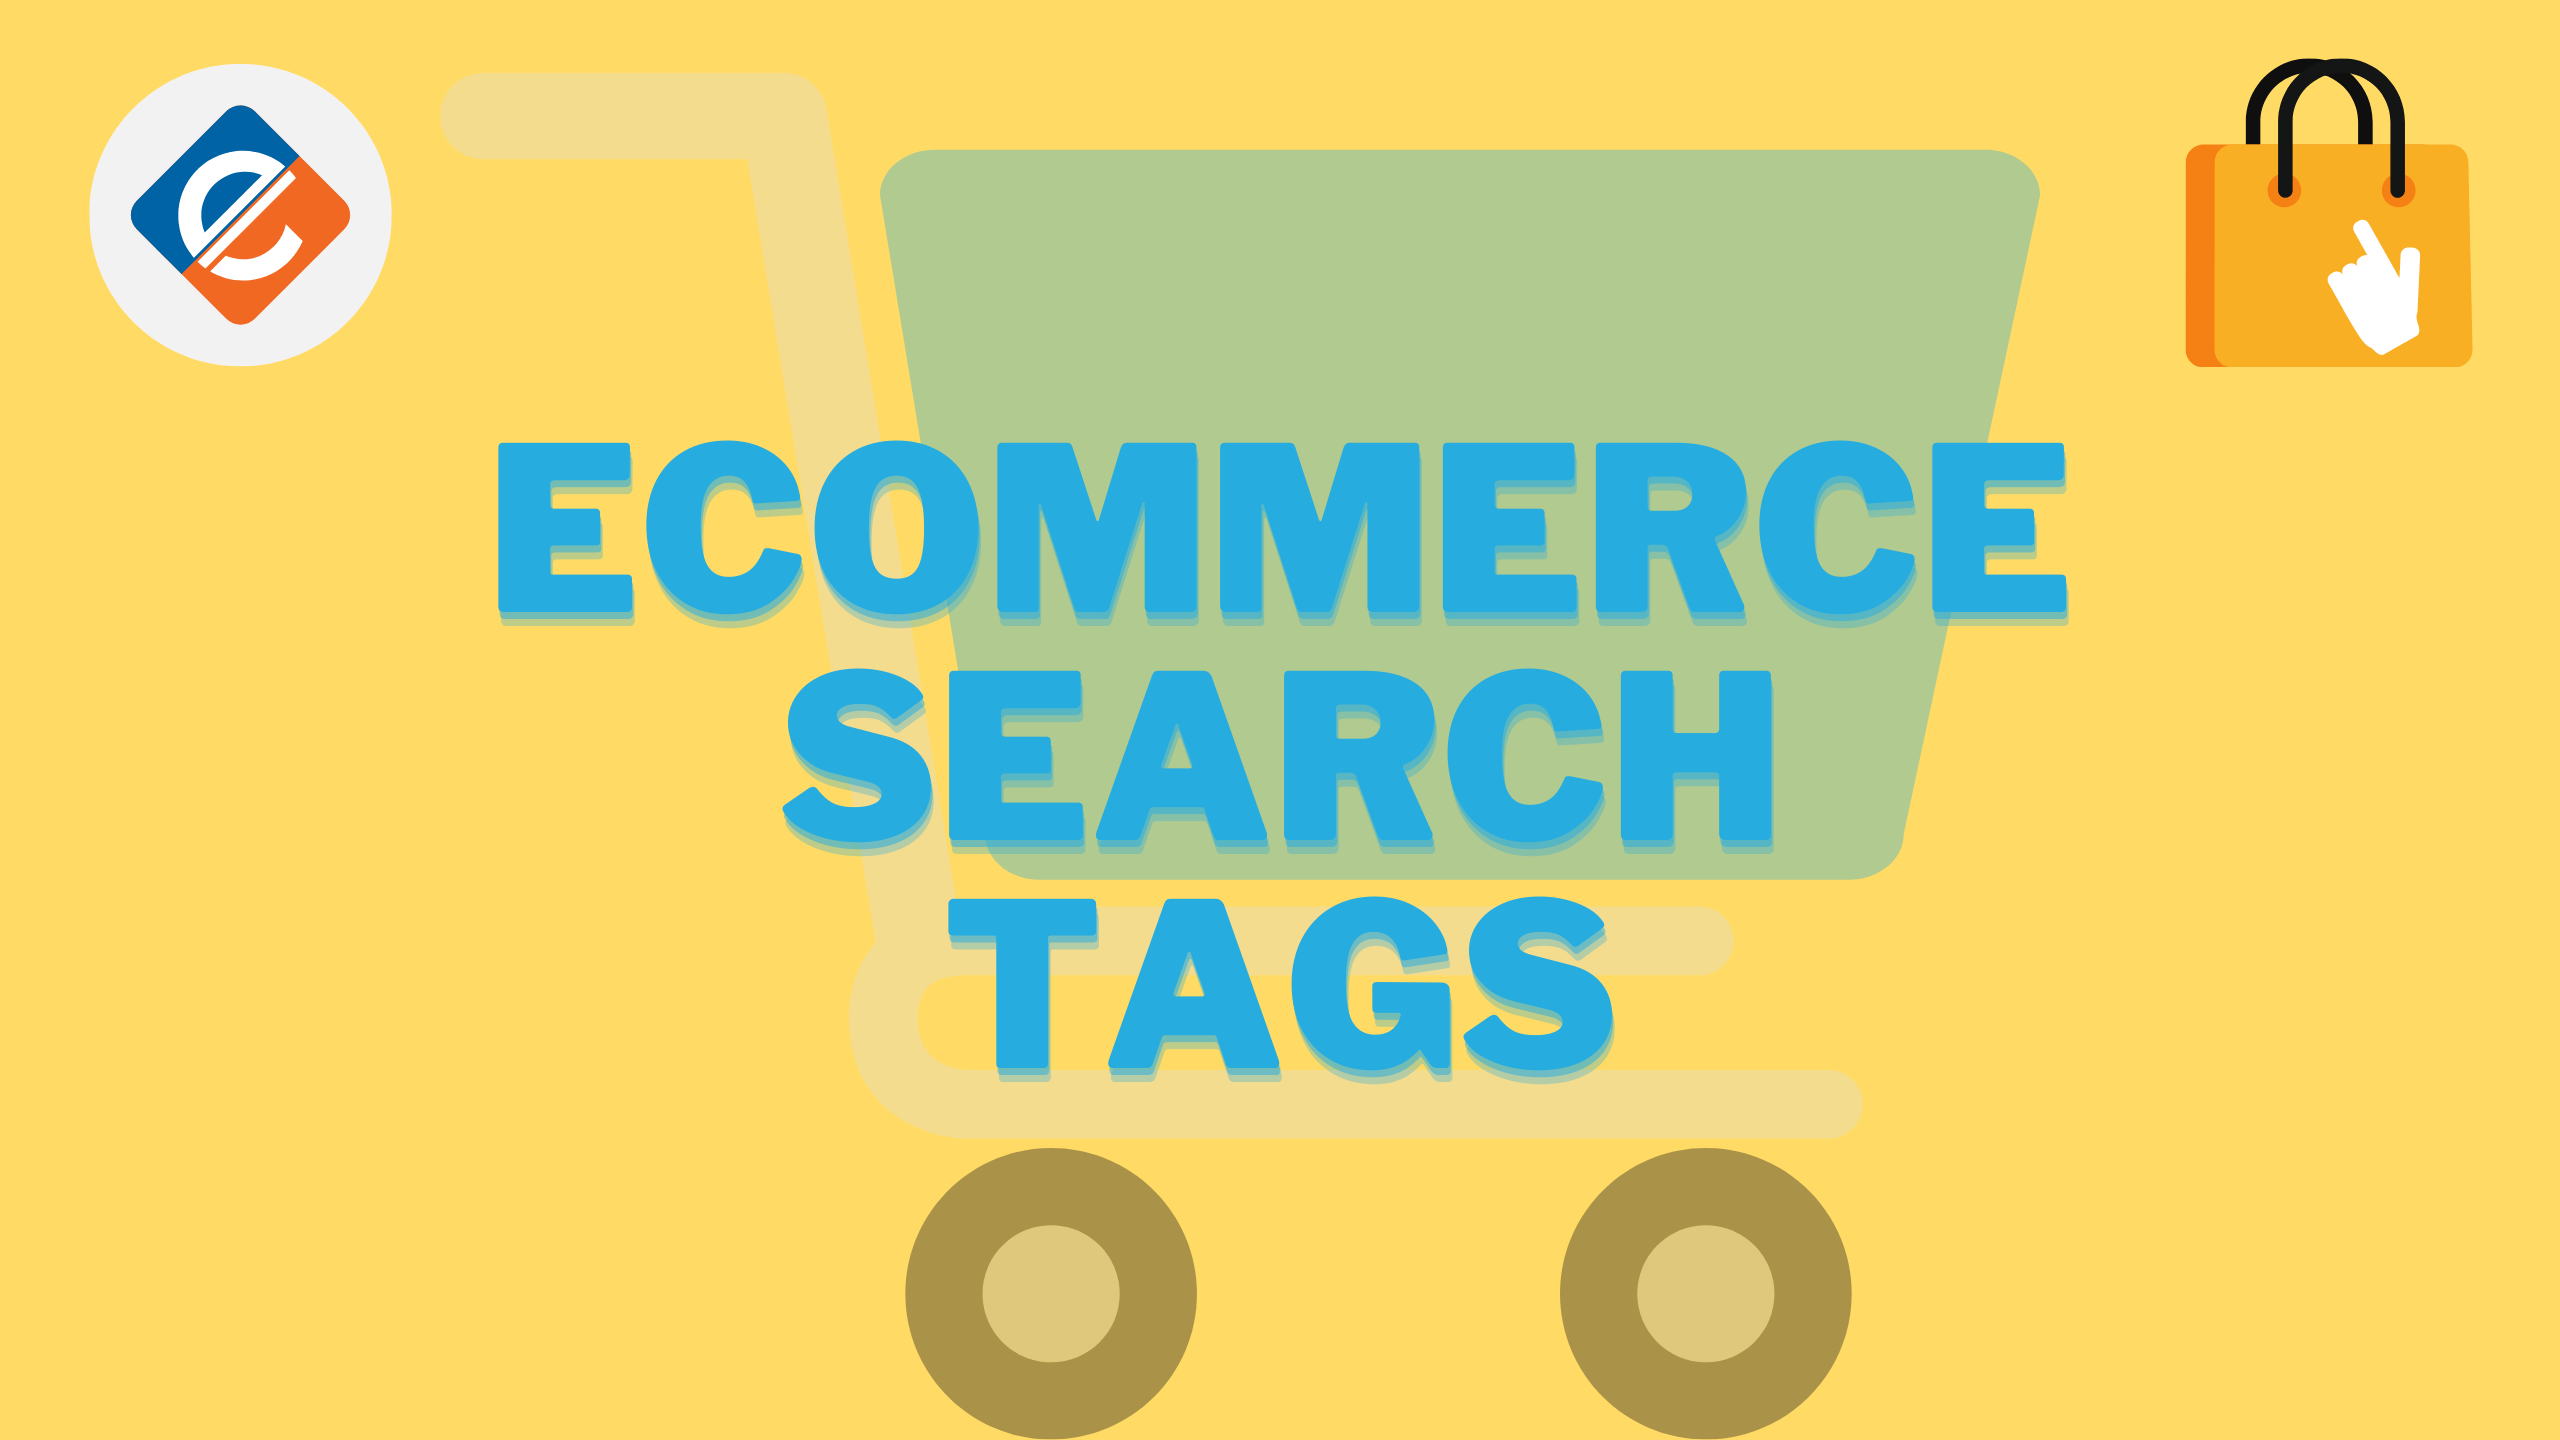 ecommerce search tags